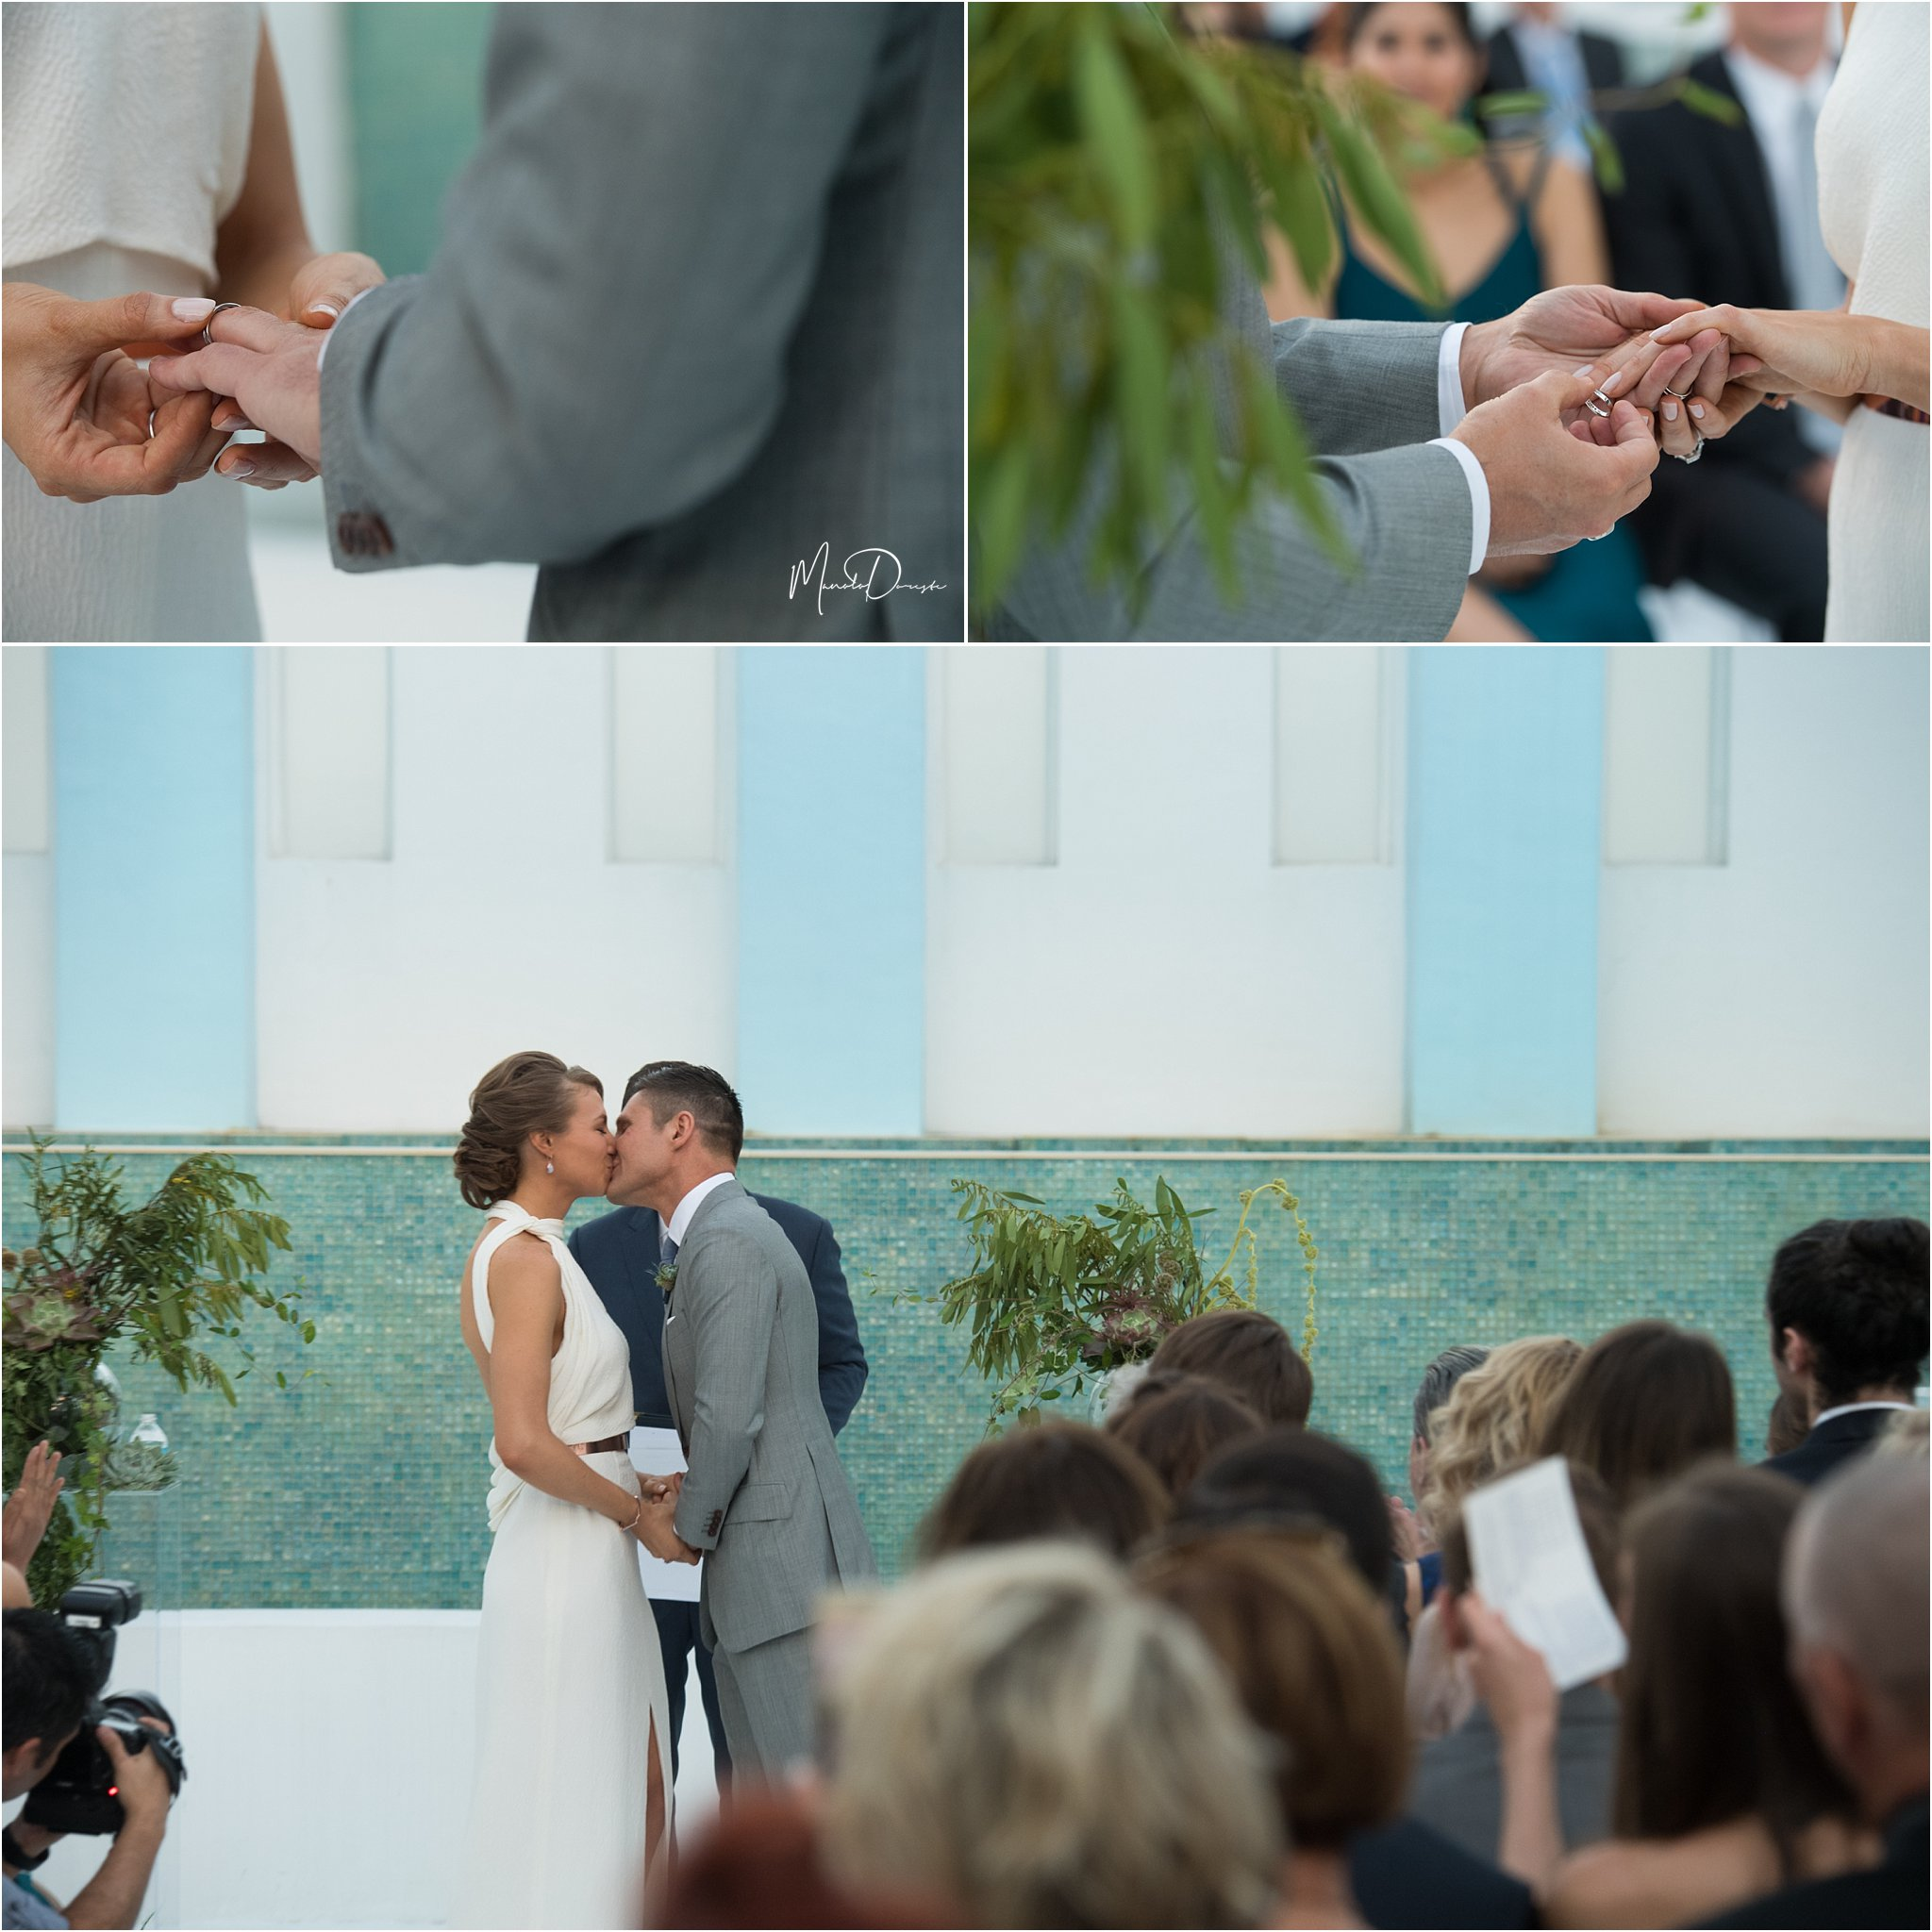 00918_ManoloDoreste_InFocusStudios_Wedding_Family_Photography_Miami_MiamiPhotographer.jpg